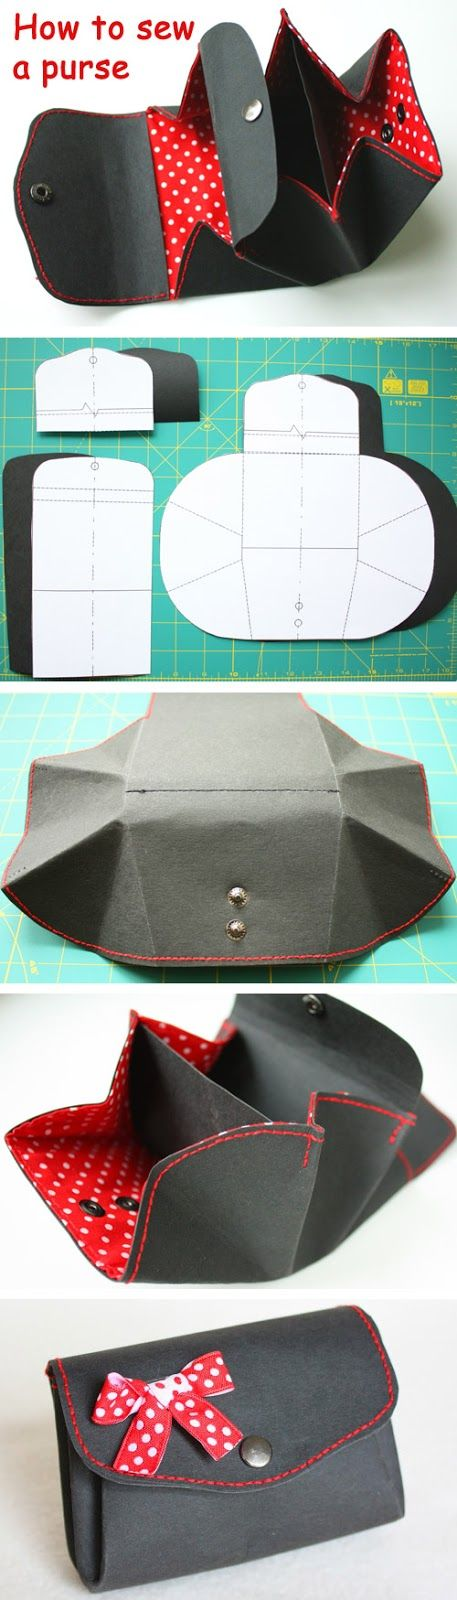 Coin purse made from Kraft-Tex paper. DIY tutorial in pictures.  www.handmadiya.co